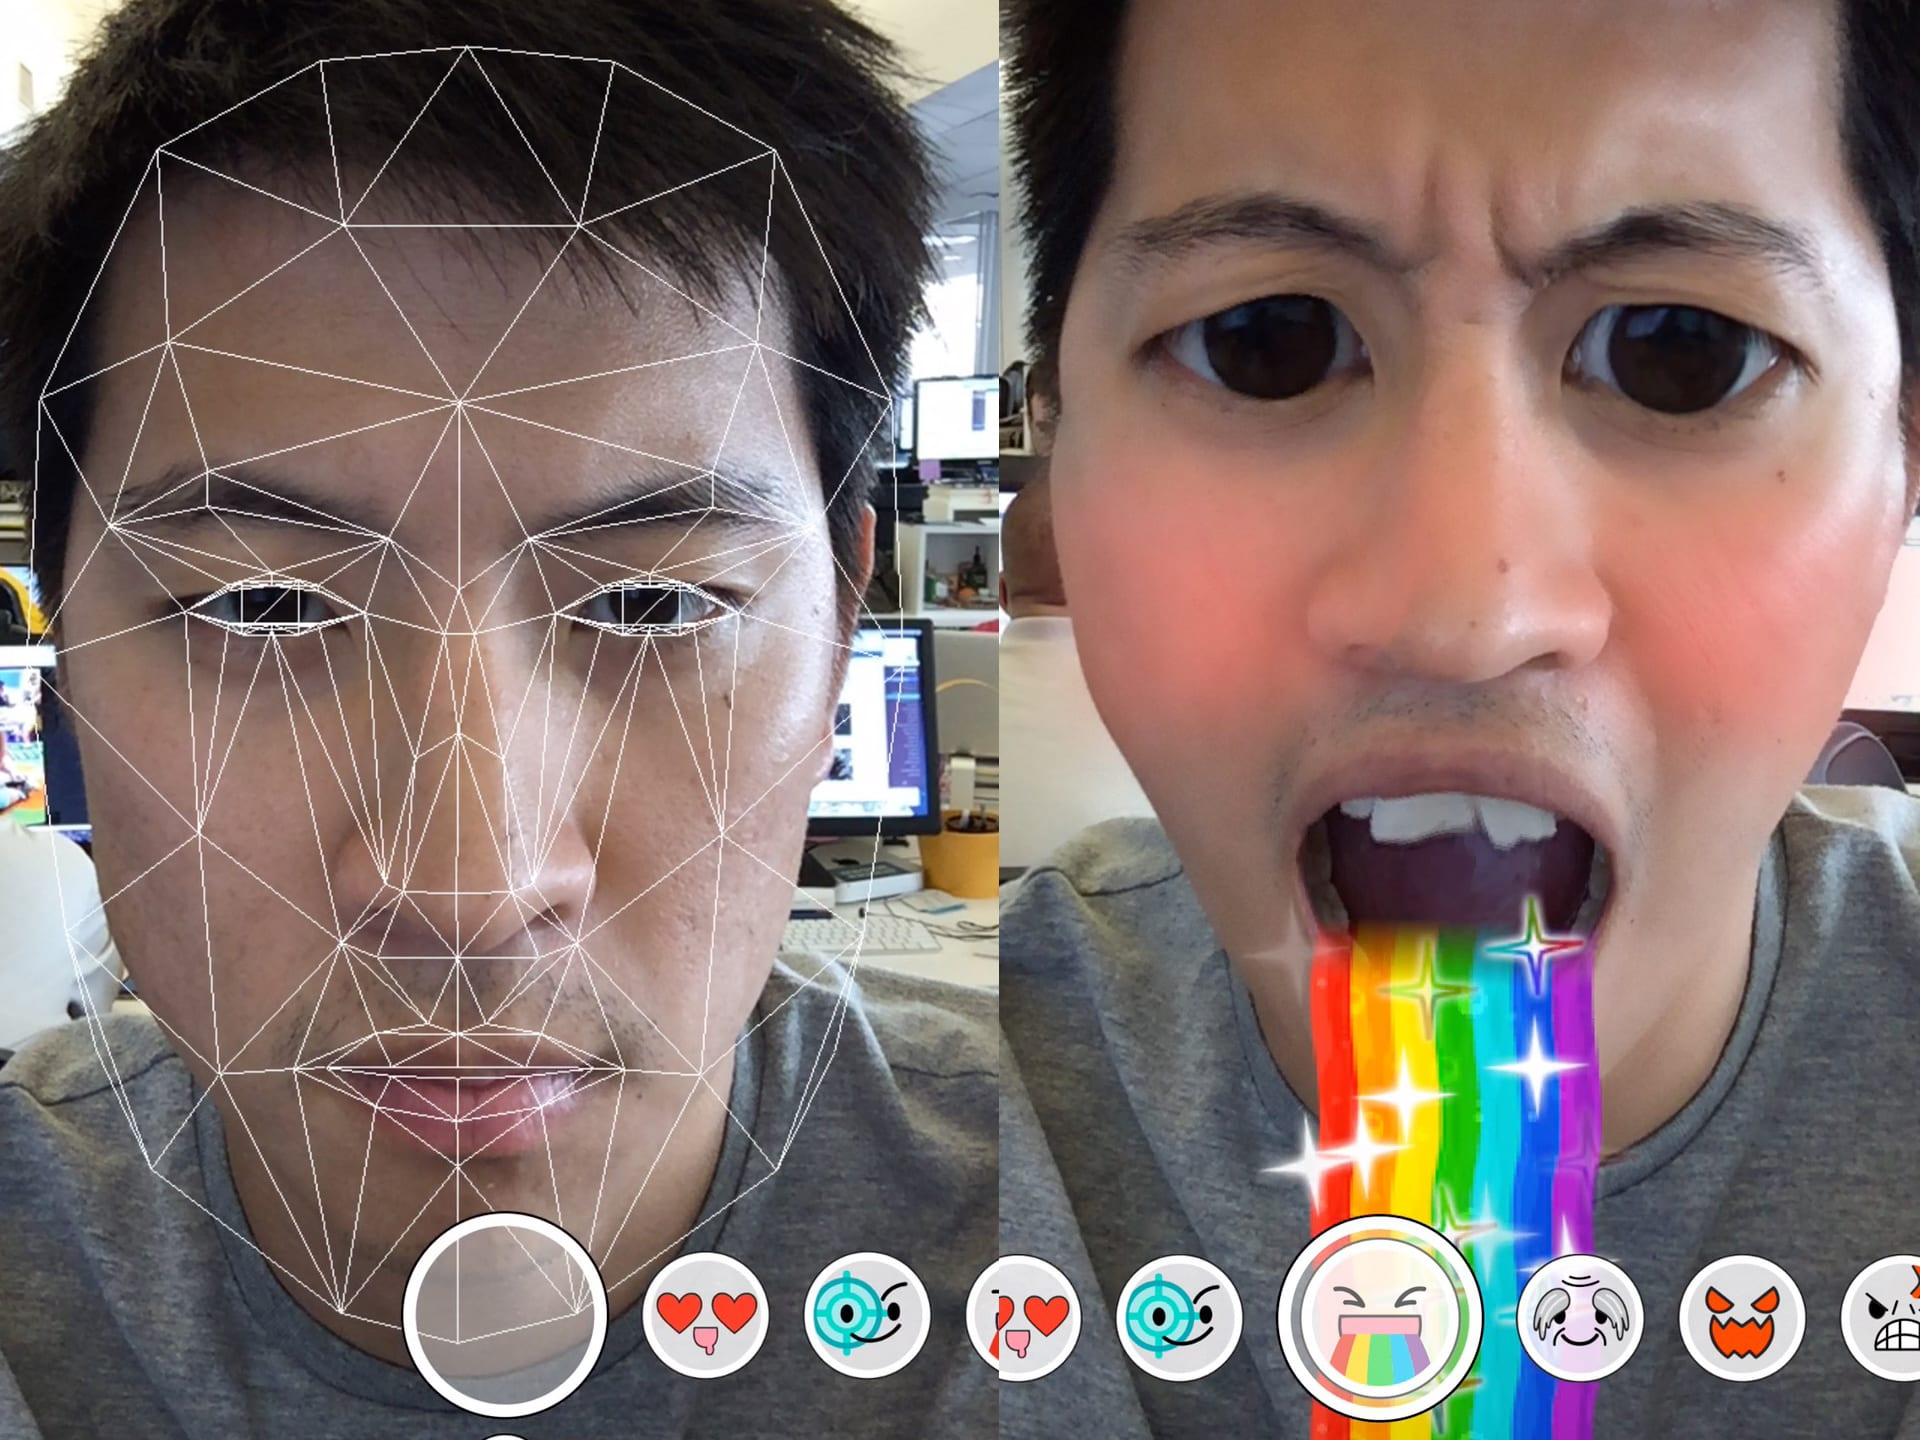 5 Apps Like Snapchat With Face Tracking Filters – Fondos de Pantalla